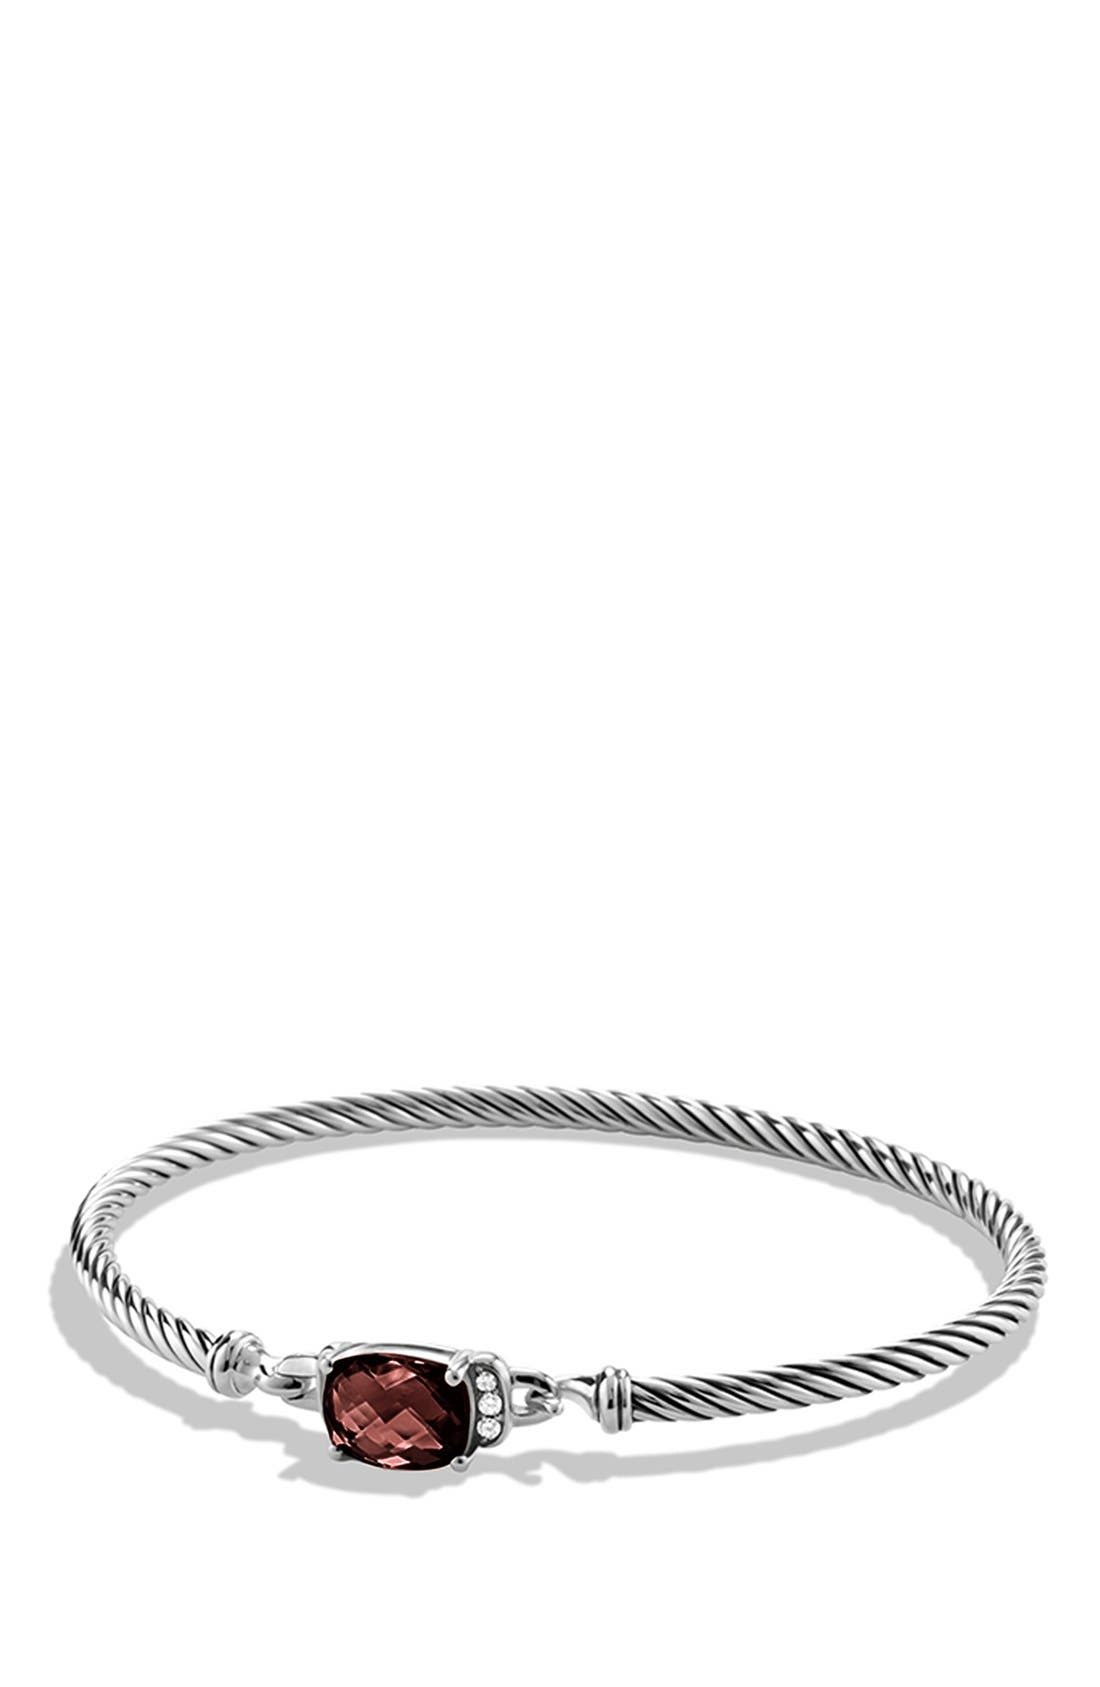 David Yurman 'Petite Wheaton' Bracelet with Semiprecious Stone & Diamonds